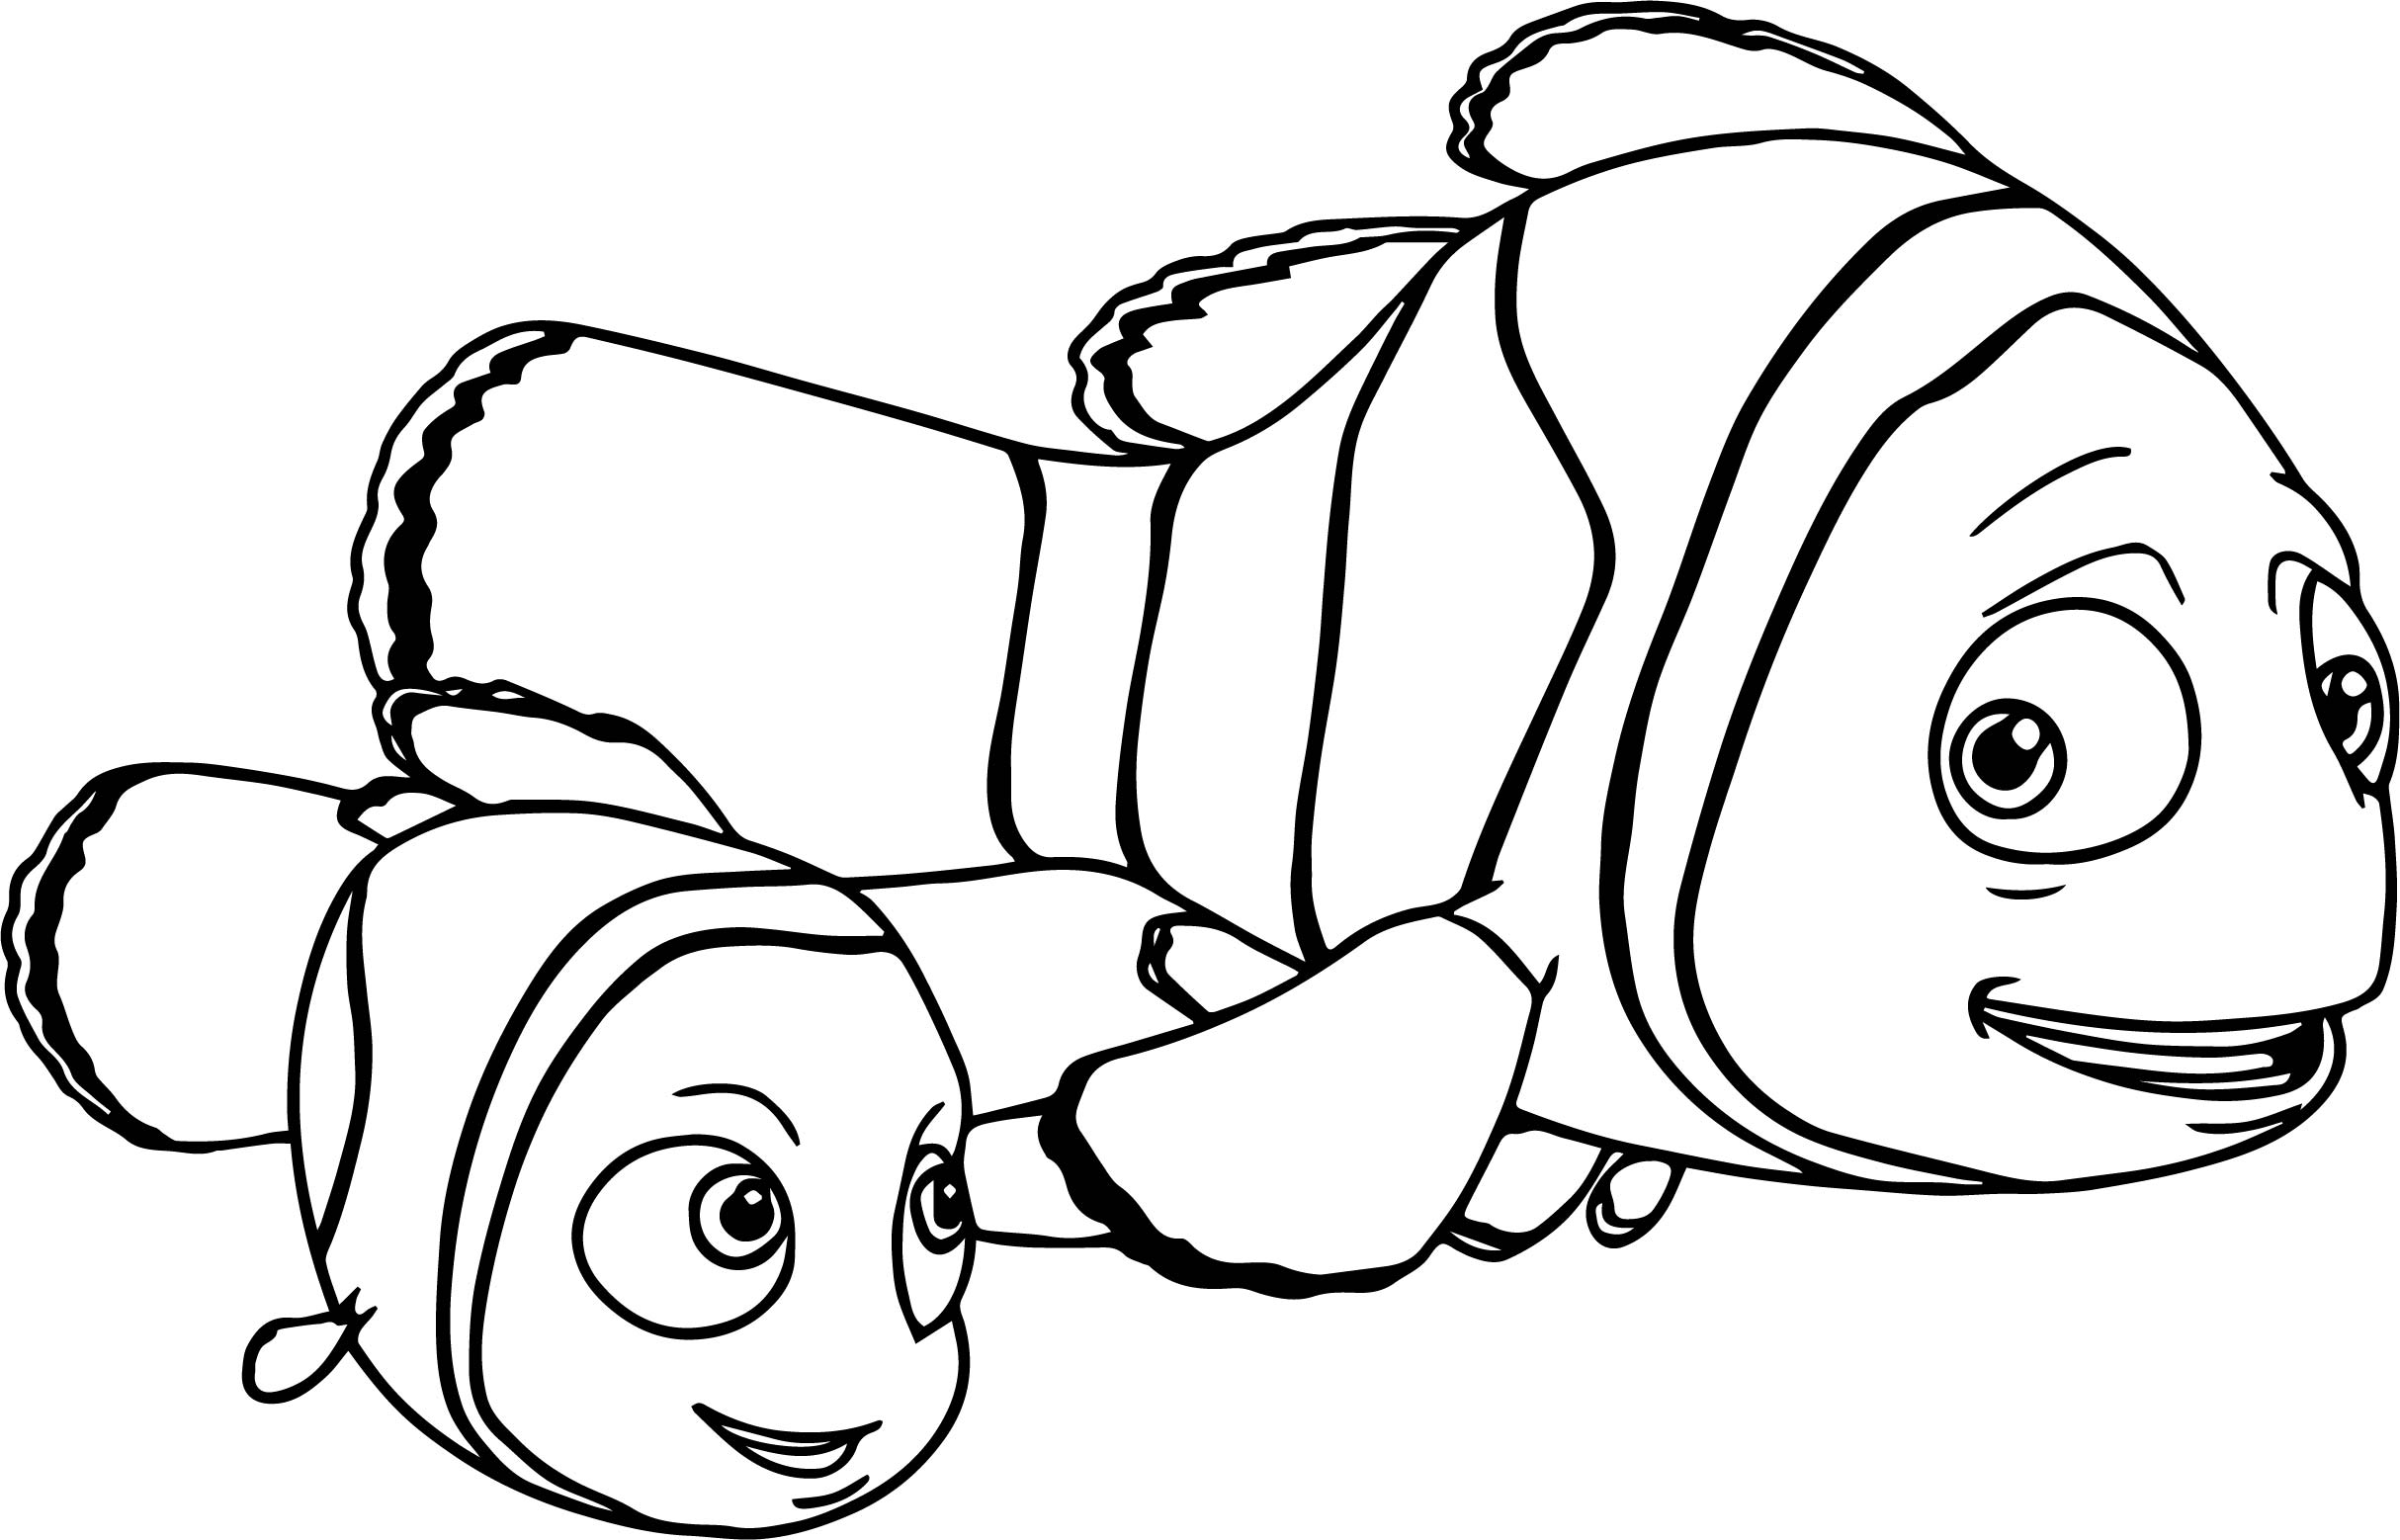 Disney finding nemo marlin nemo coloring pages for Finding nemo coloring pages free